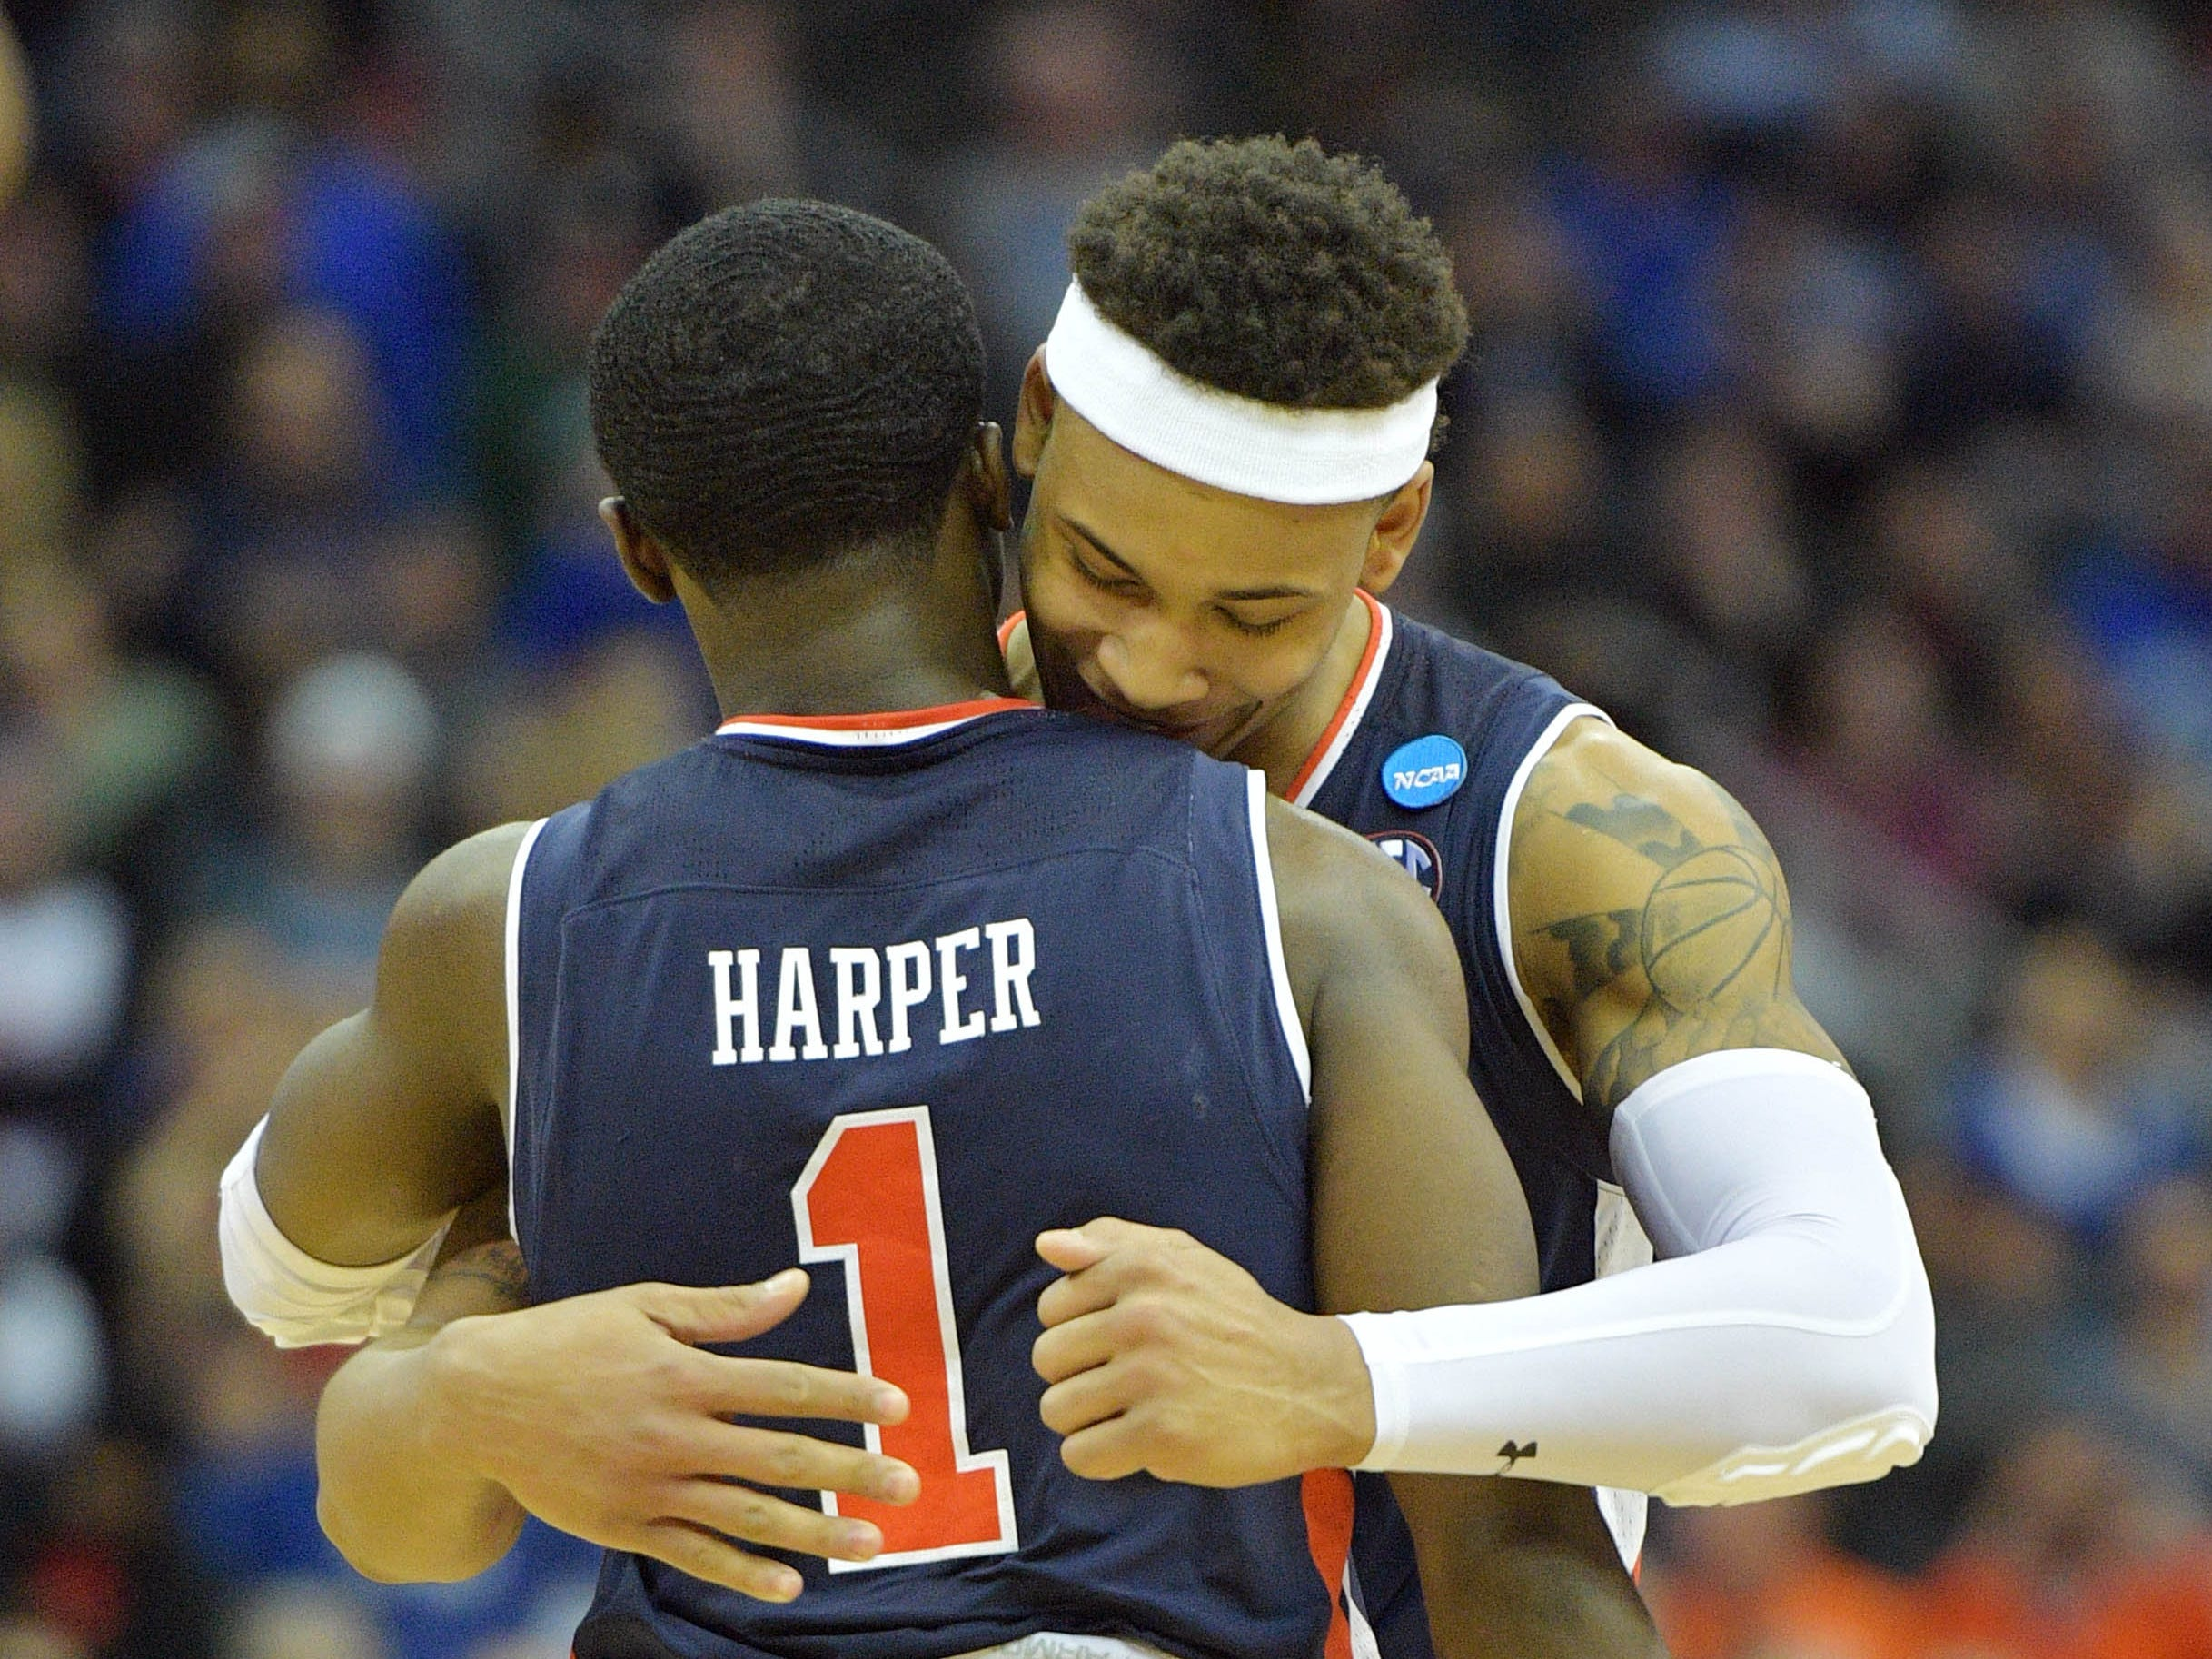 Mar 31, 2019; Kansas City, MO, United States; Auburn Tigers guard Bryce Brown (2) and guard Jared Harper (1) hug against the Kentucky Wildcats during overtime in the championship game of the midwest regional of the 2019 NCAA Tournament at Sprint Center. Mandatory Credit: Denny Medley-USA TODAY Sports